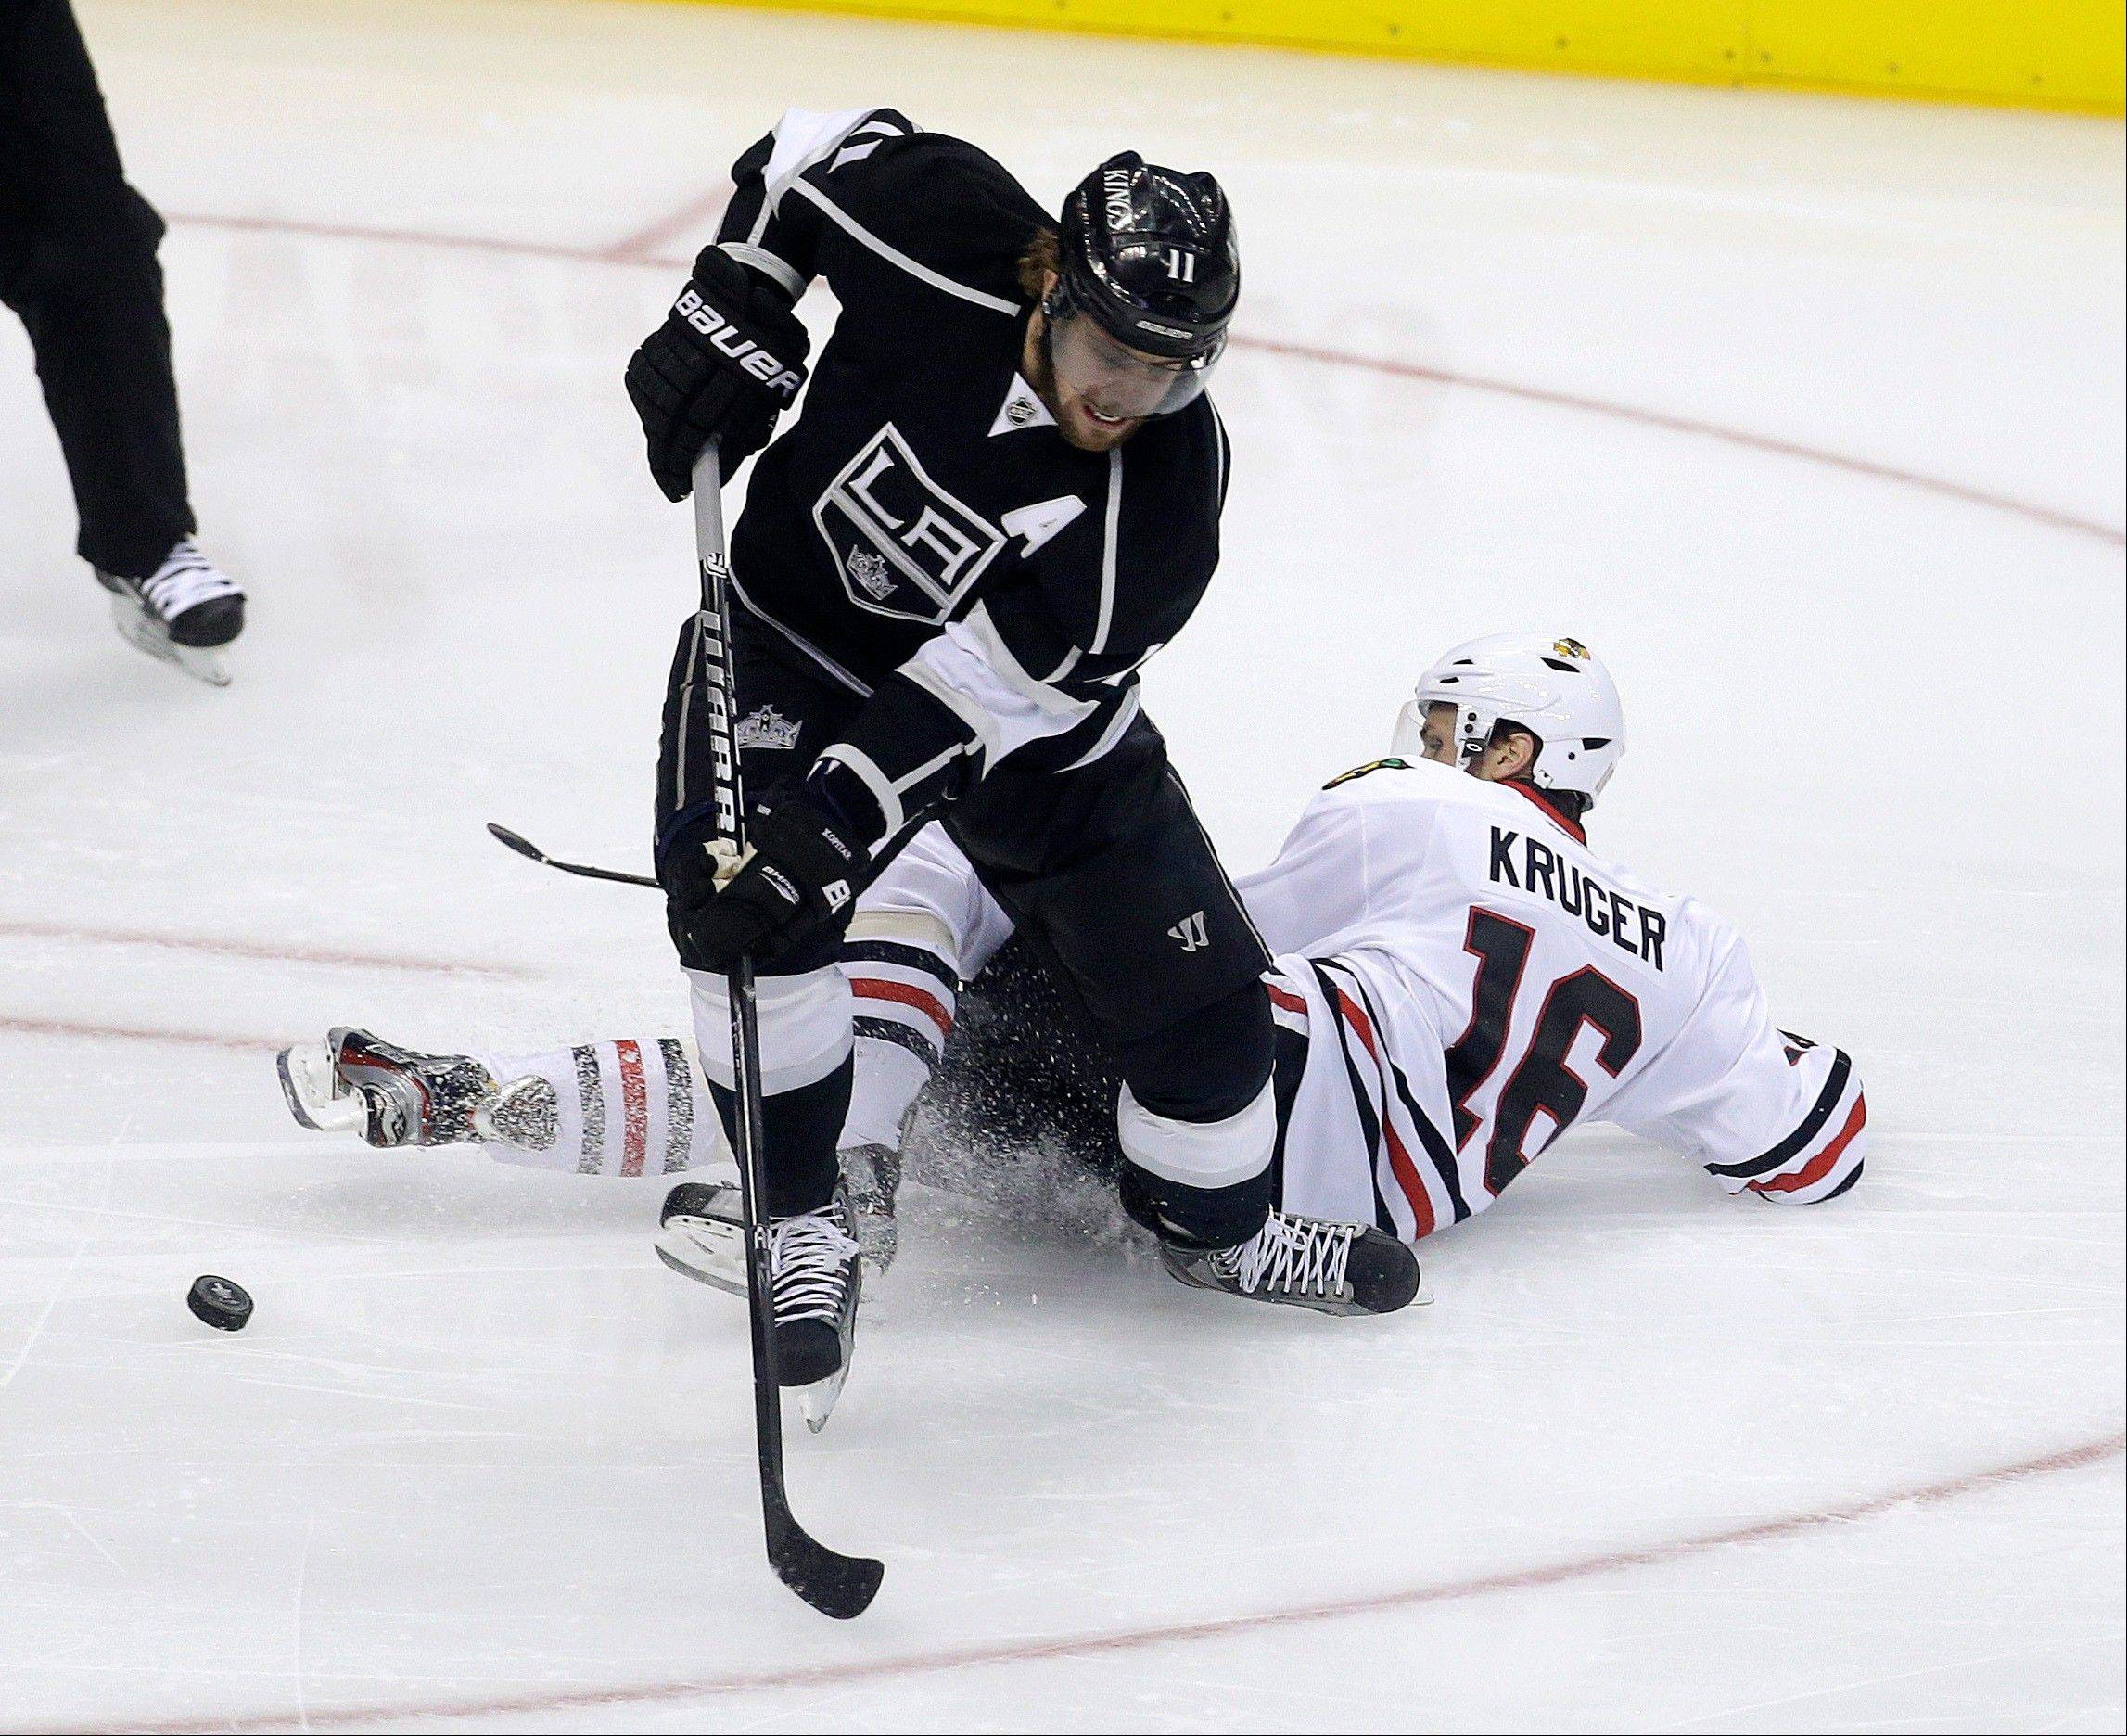 Los Angeles Kings center Anze Kopitar, top, knocks the puck way from Chicago Blackhawks center Marcus Kruger during the first period in Game 4 of the NHL hockey Stanley Cup playoffs Western Conference finals, in Los Angeles on Thursday, June 6, 2013.